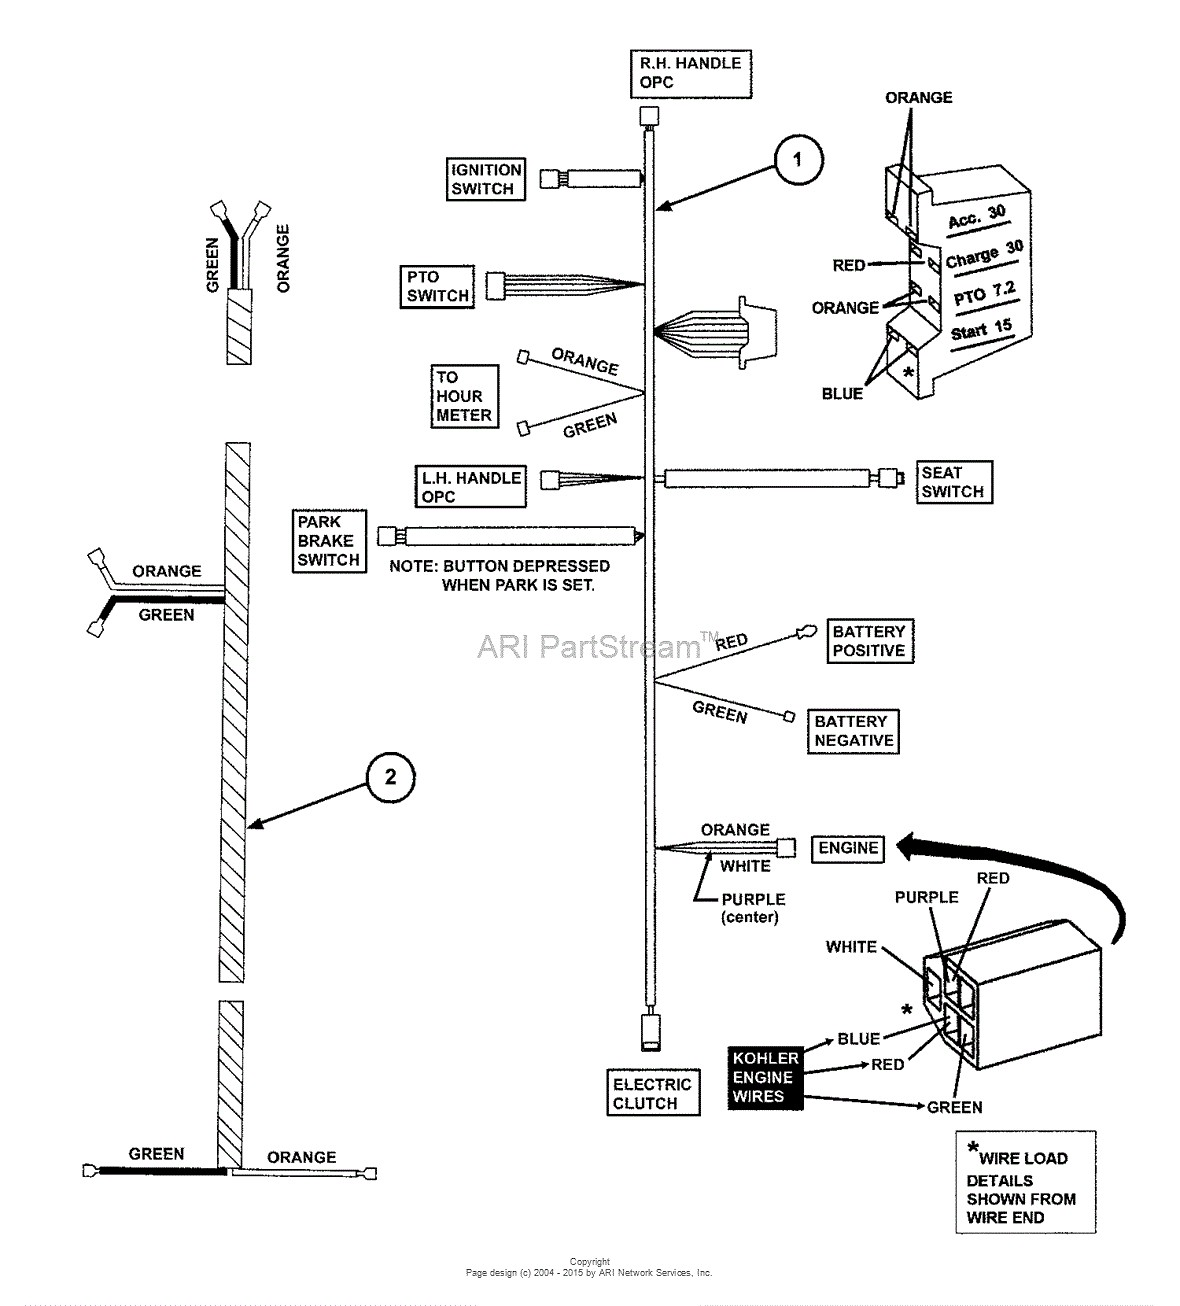 Kohler Engine Wiring Diagram Awesome Image 25 Hp Collection Mand Pro Schematic